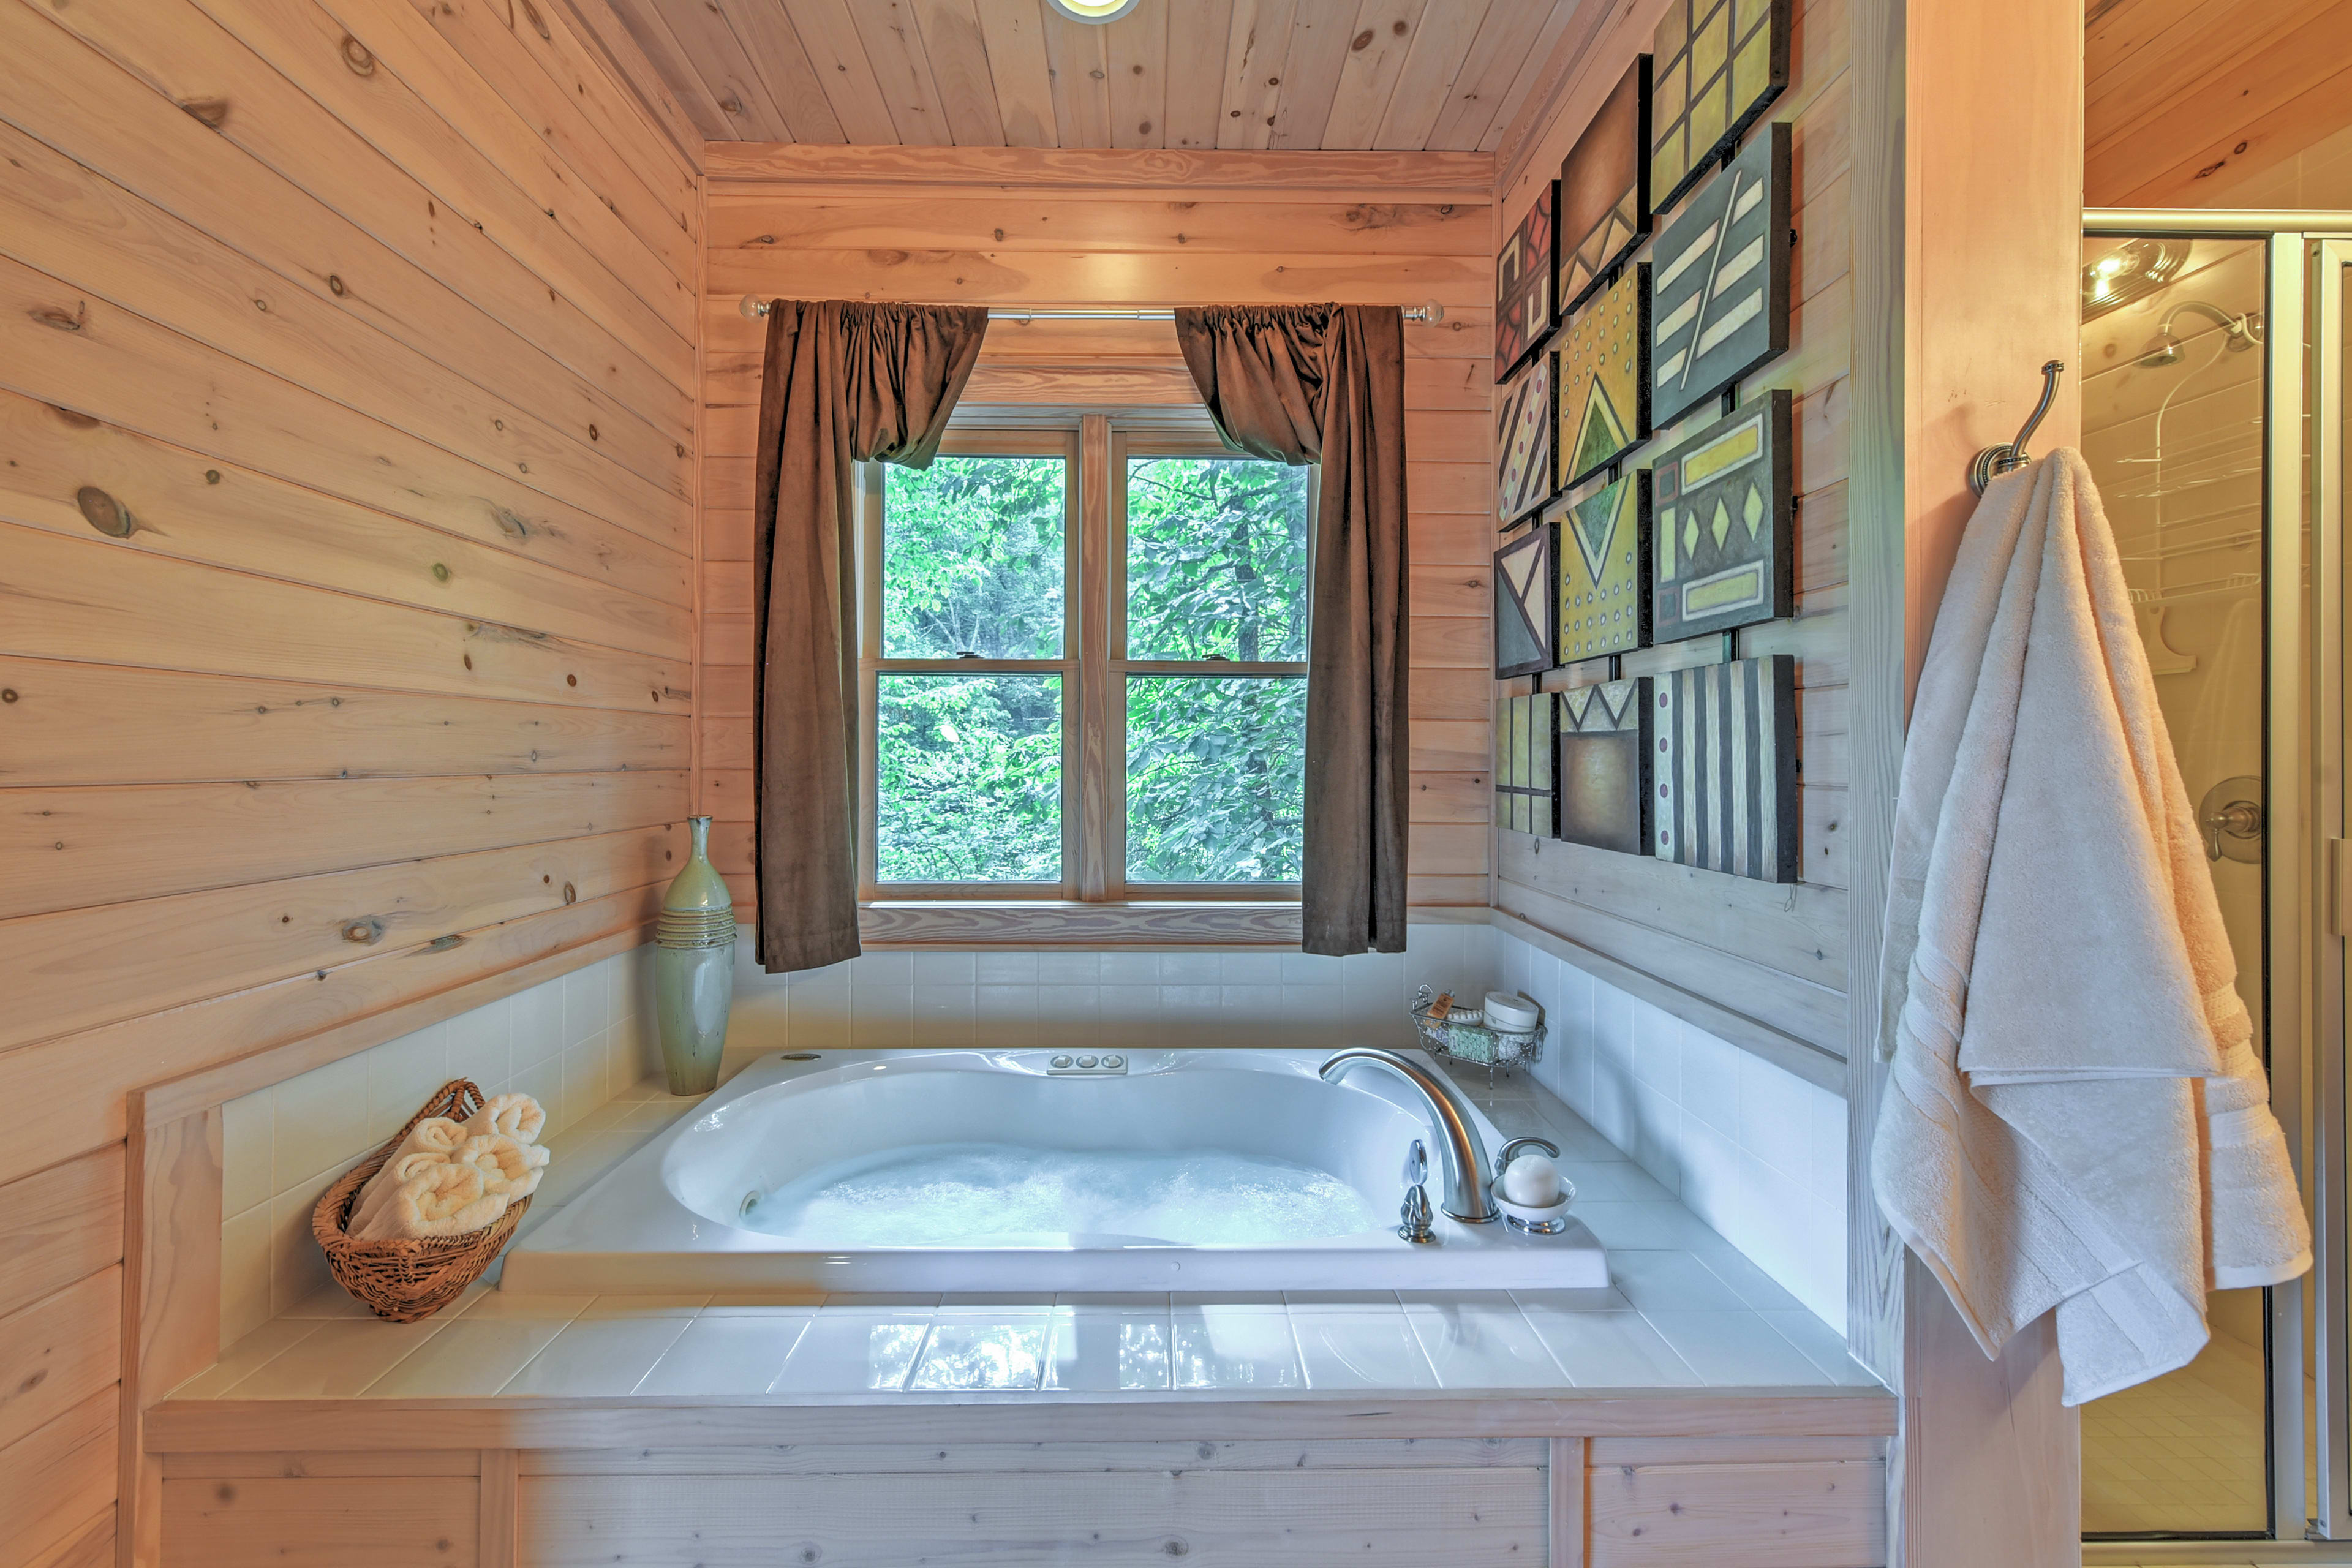 Get some much deserved R&R in the jetted tub!